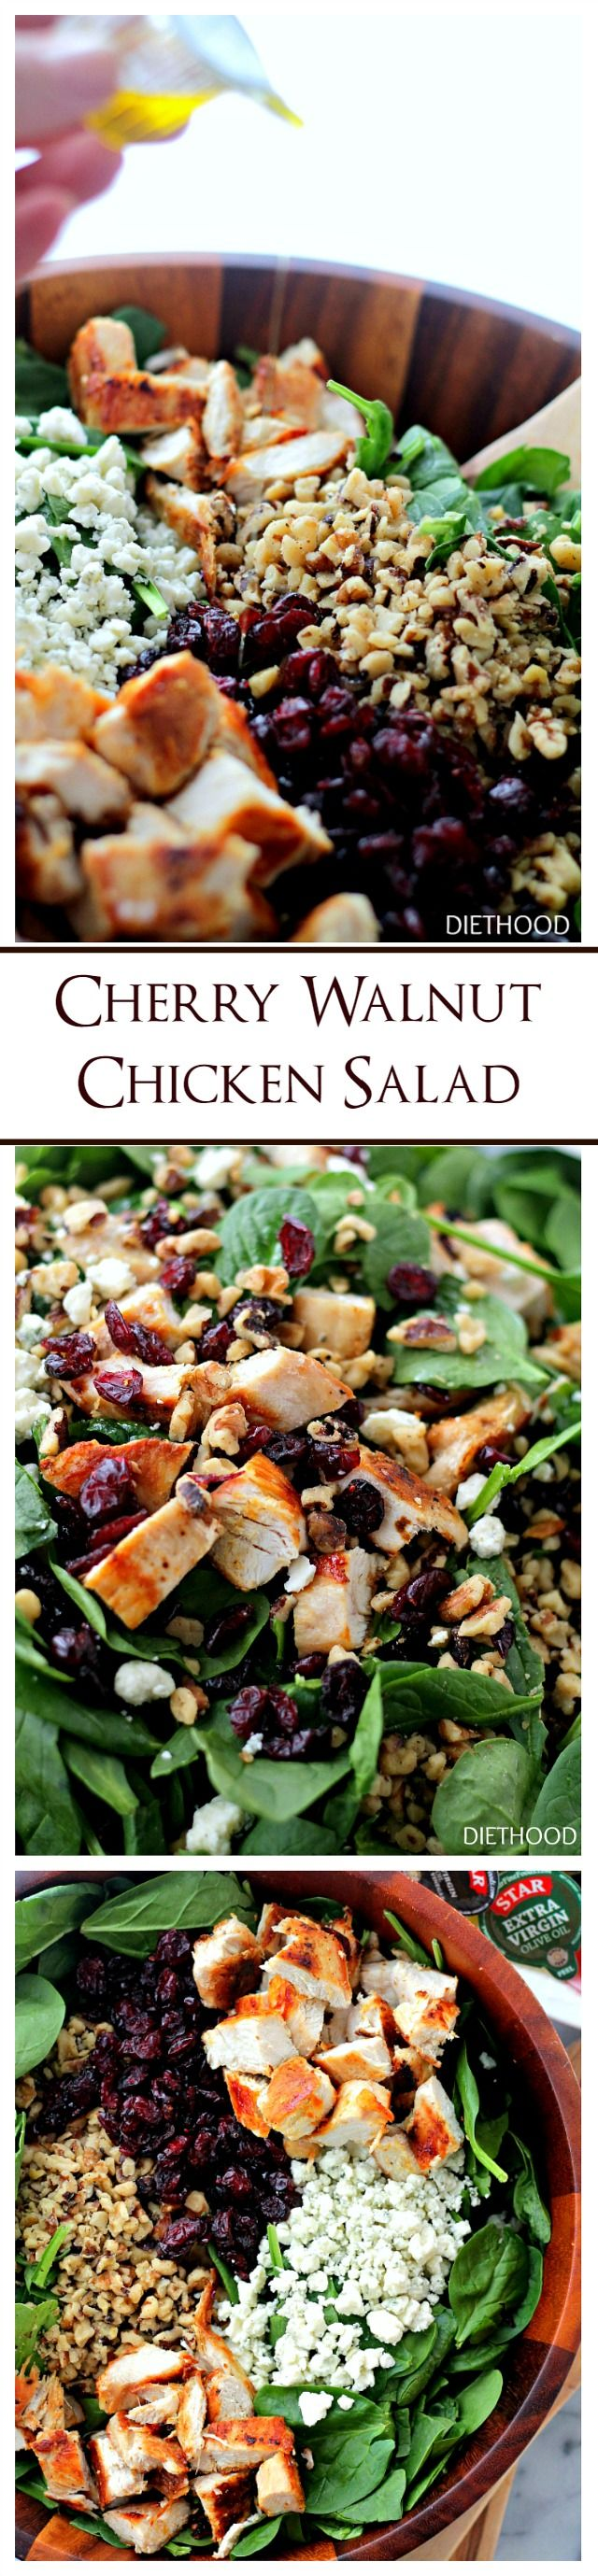 Cherry Walnut Chicken Salad   www.diethood.com   Delicious chicken salad featuring a combination of dried cherries, walnuts and baby spinach tossed with a simple oil-and-vinegar dressing.